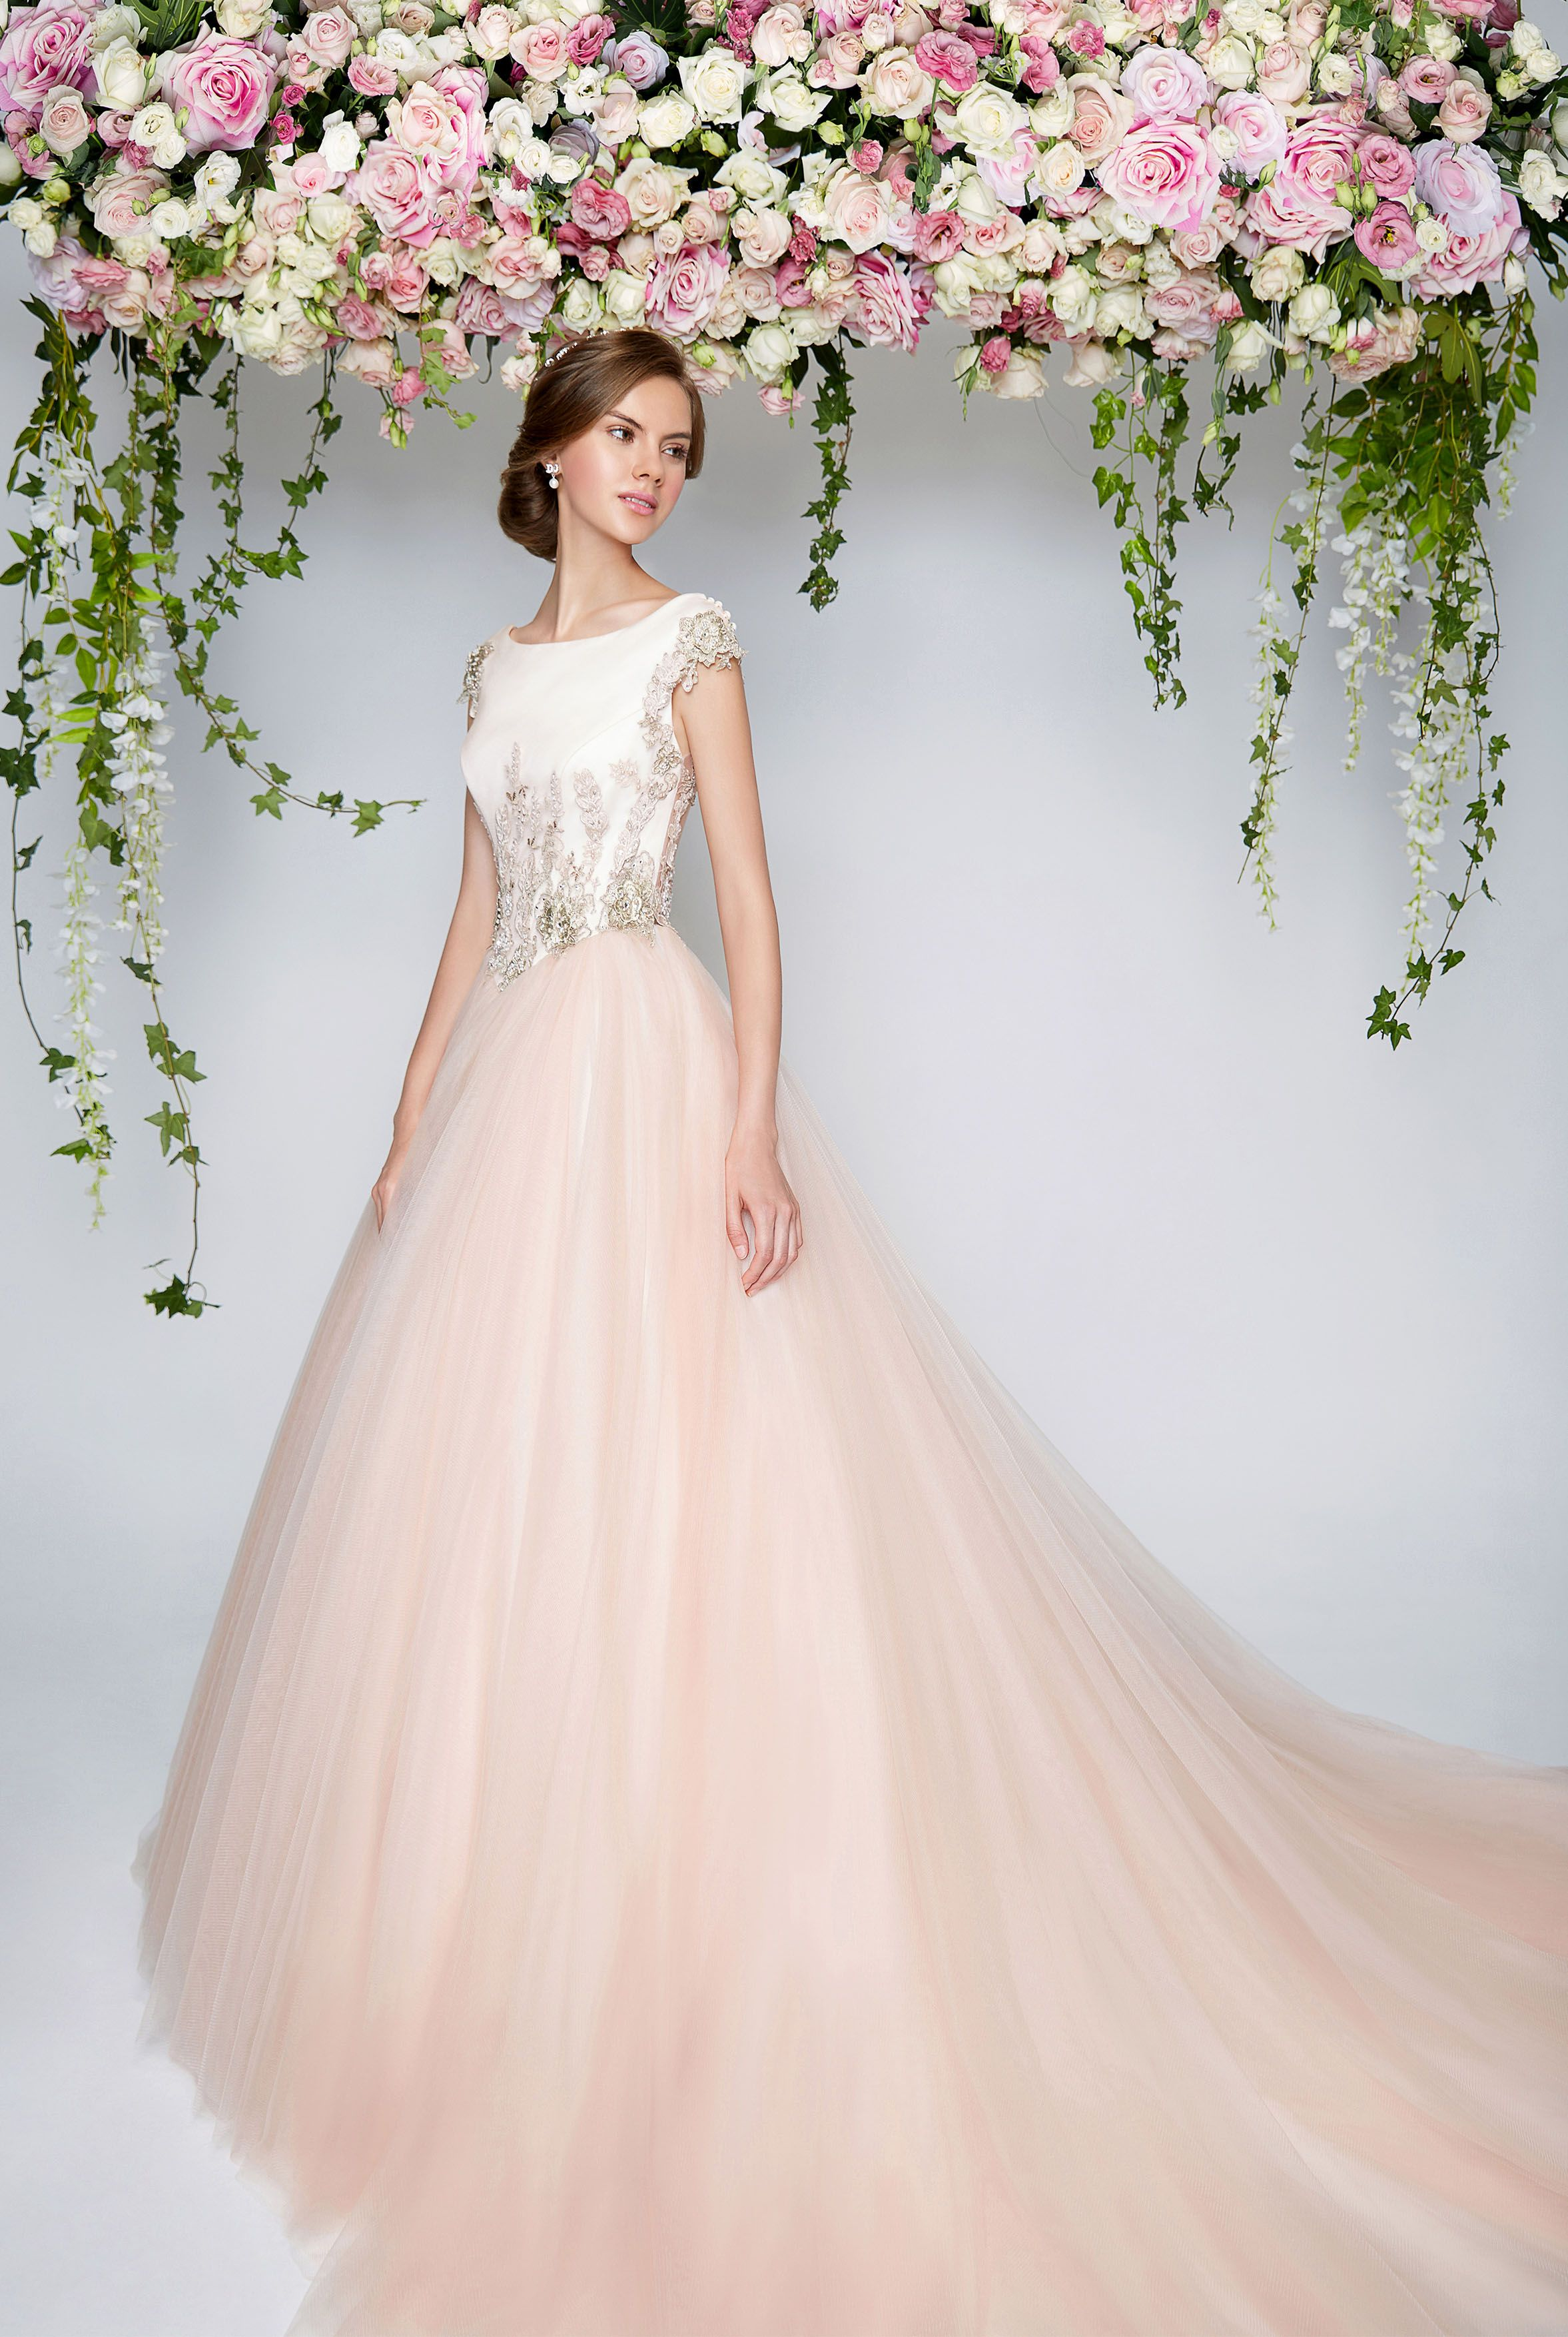 Coloured but subtle wedding dresses you will fall in love with bridal boutique singapore wedding gown singapore wedding dress singapore wedding package singapore wedding gown rental wedding gown purchase junglespirit Images